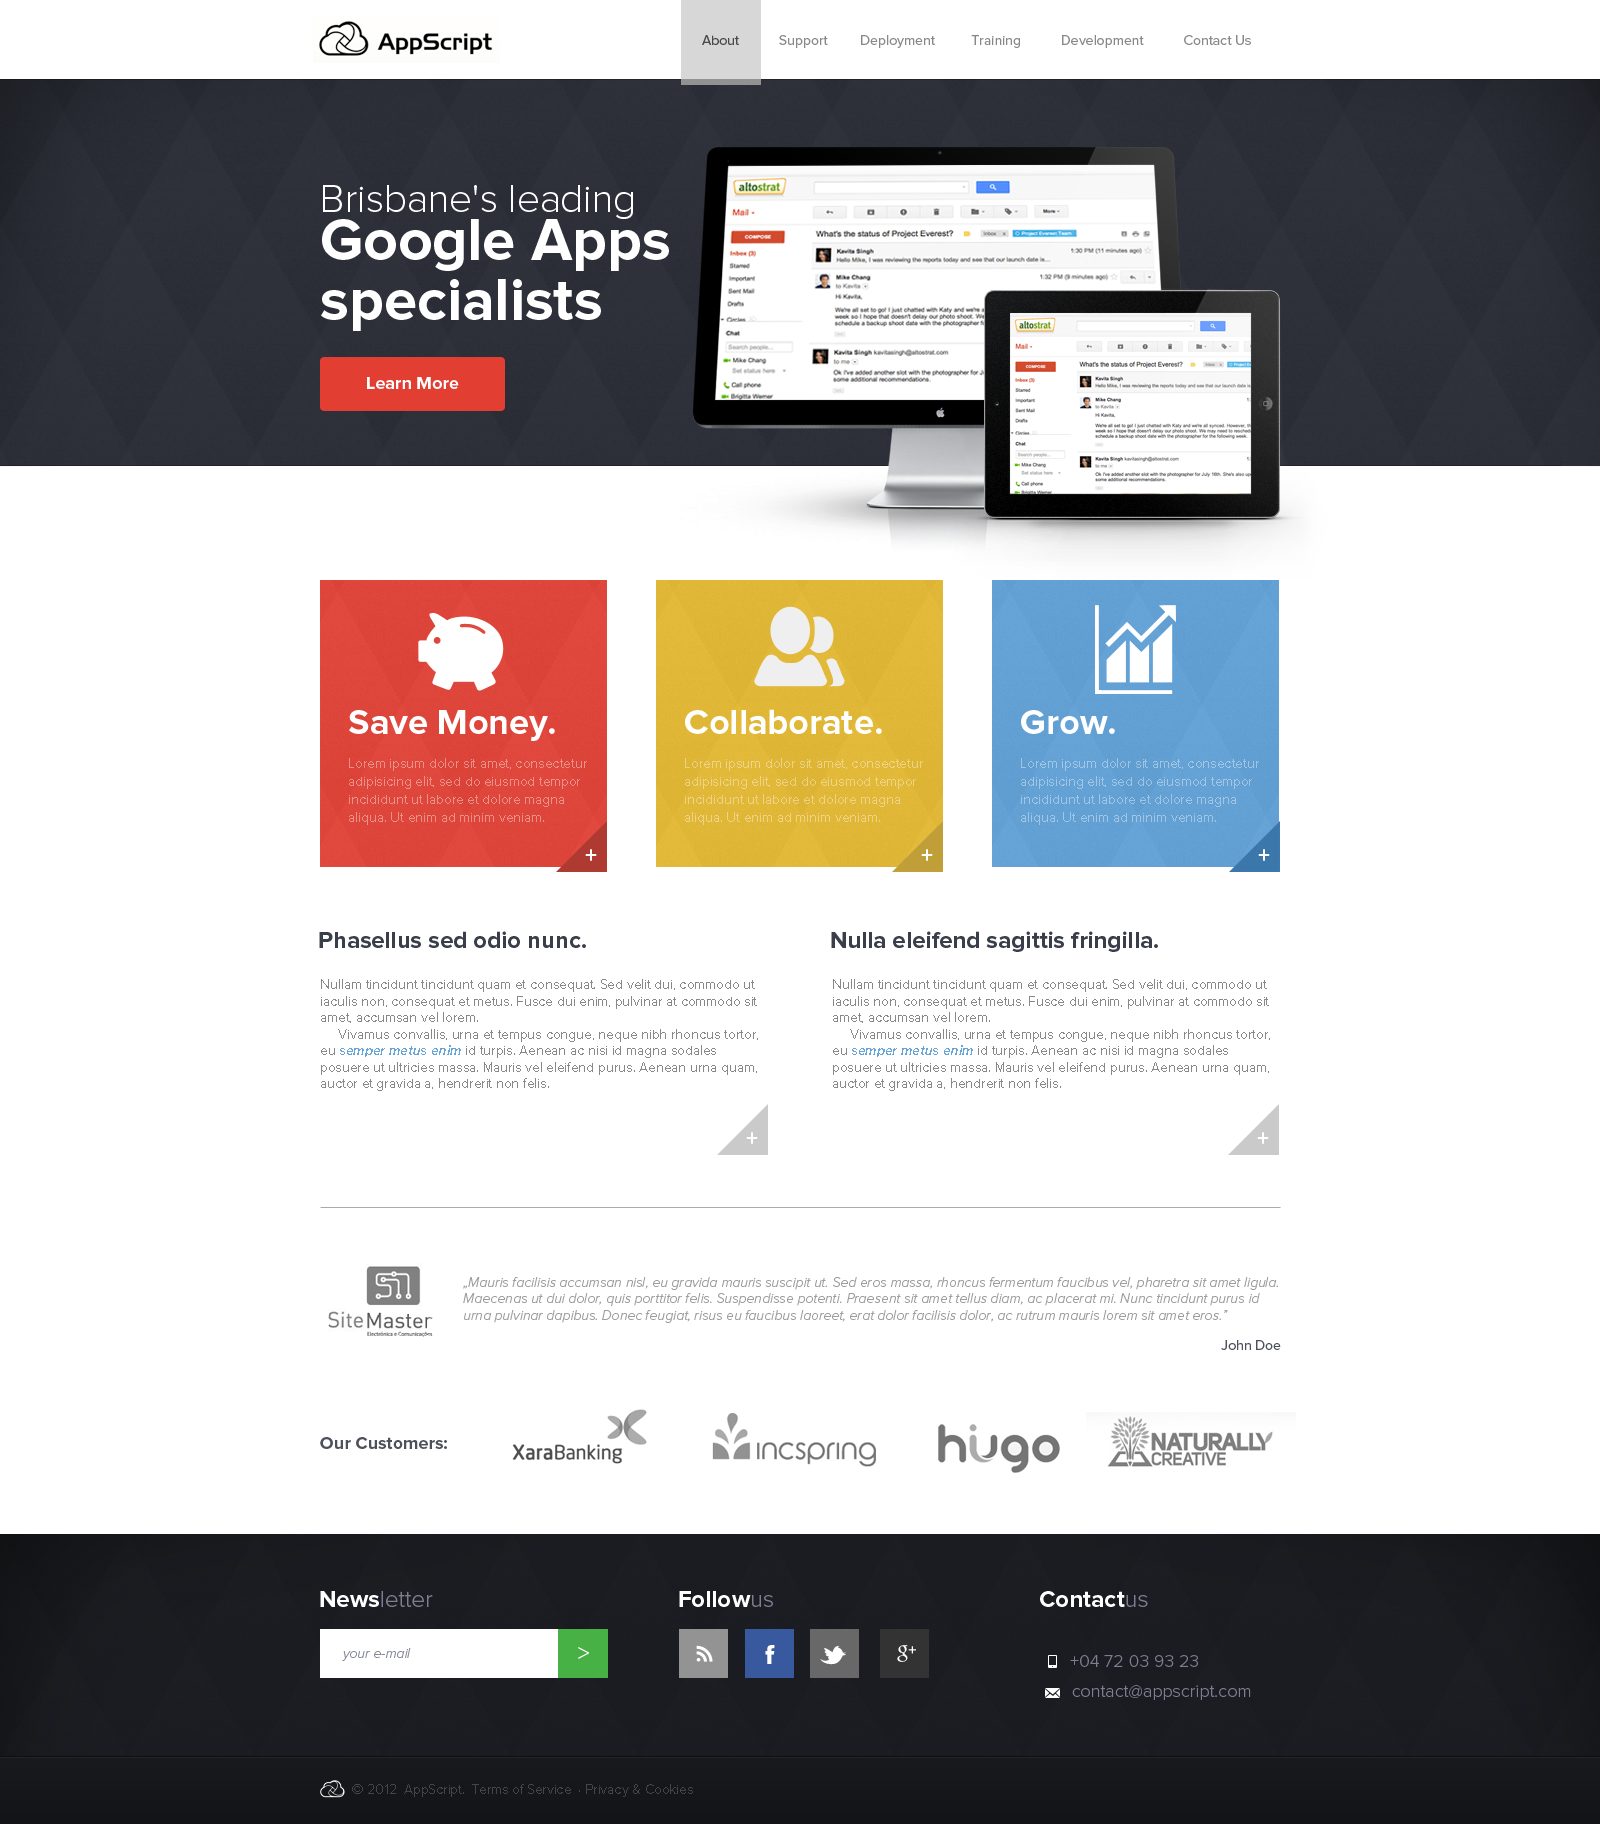 AppScript - Cloud Services company by Bob-Project